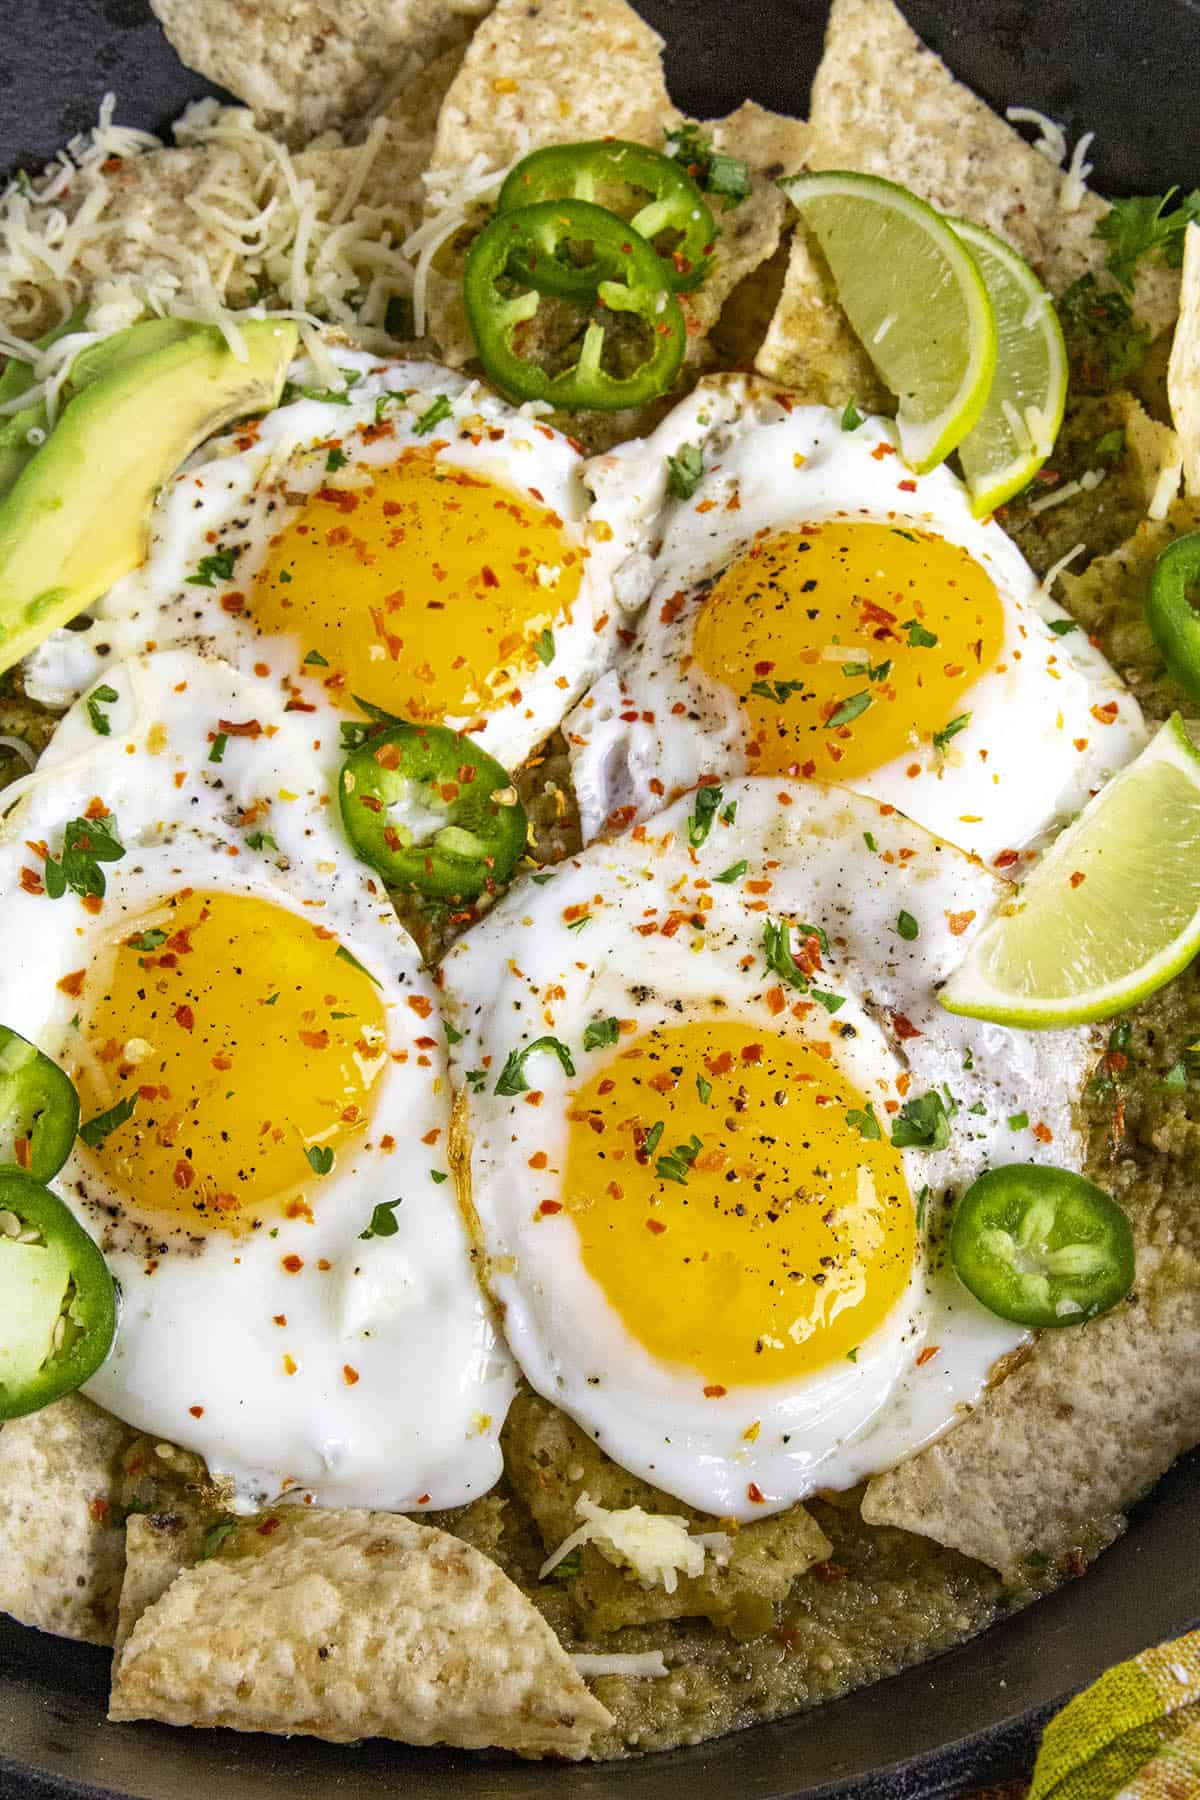 Fried eggs on my Chilaquiles Verdes